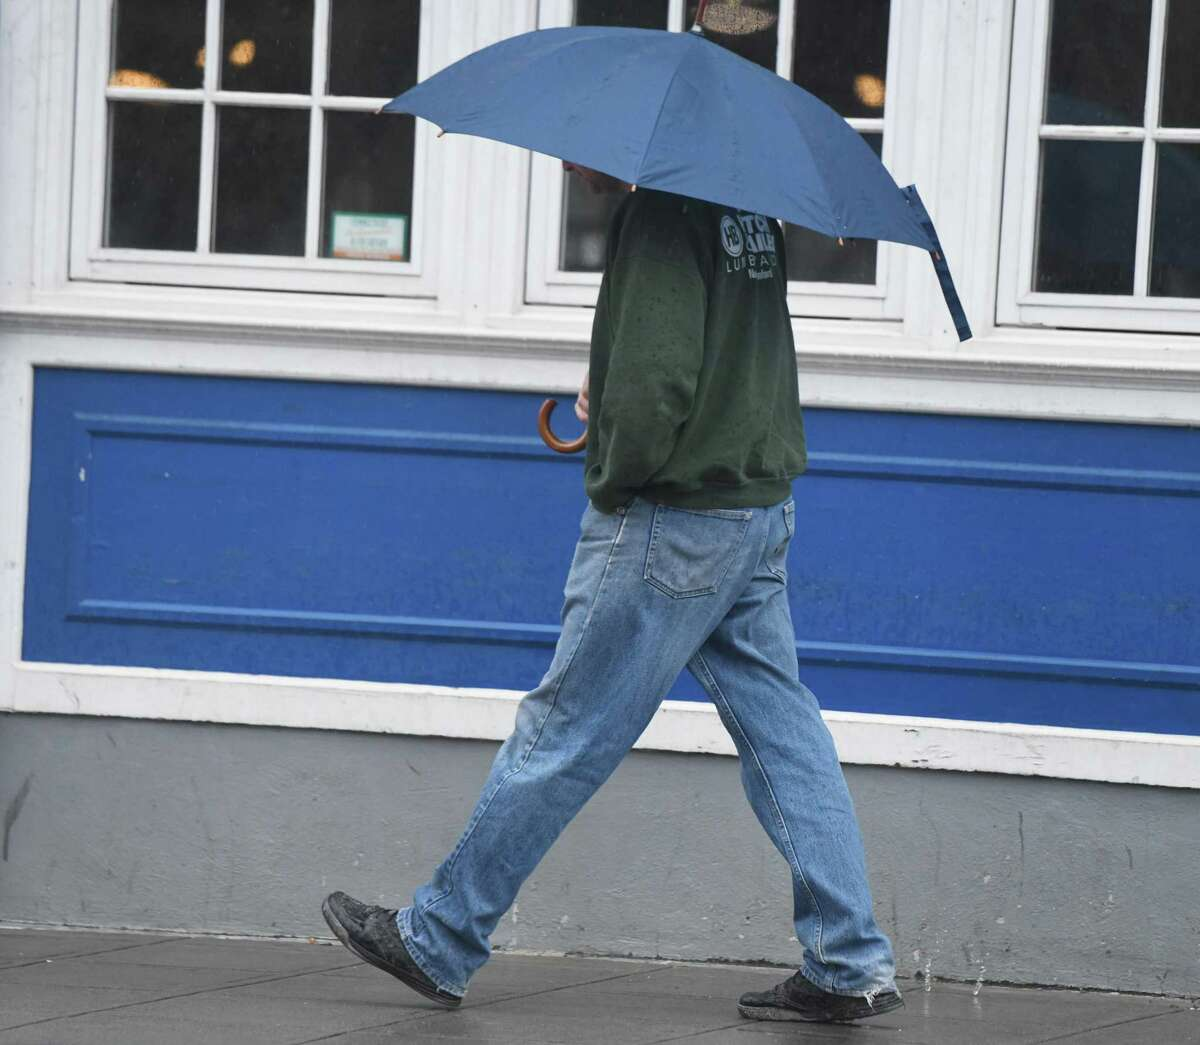 A man walks along Main Steet with an umbrella as rain pours down in Stamford in April 2020. Rain is expected at the start of the July 4th weekend.